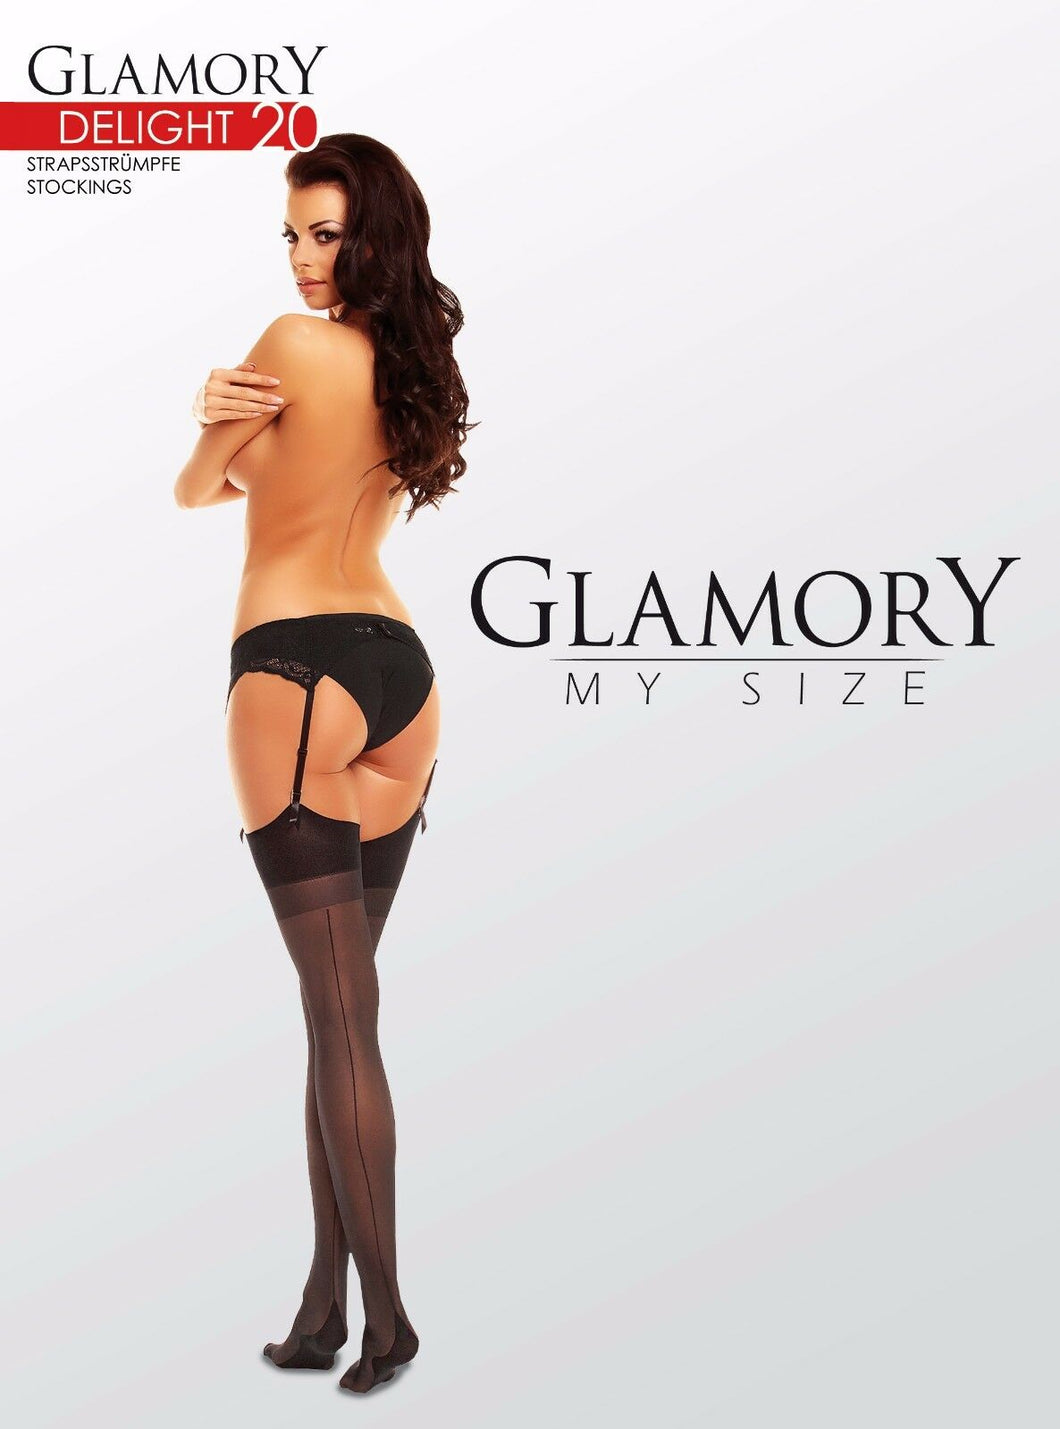 Glamory Delight 20 Seamed Stockings Style 50132 Teint Sizes to 4XL 20 Denier